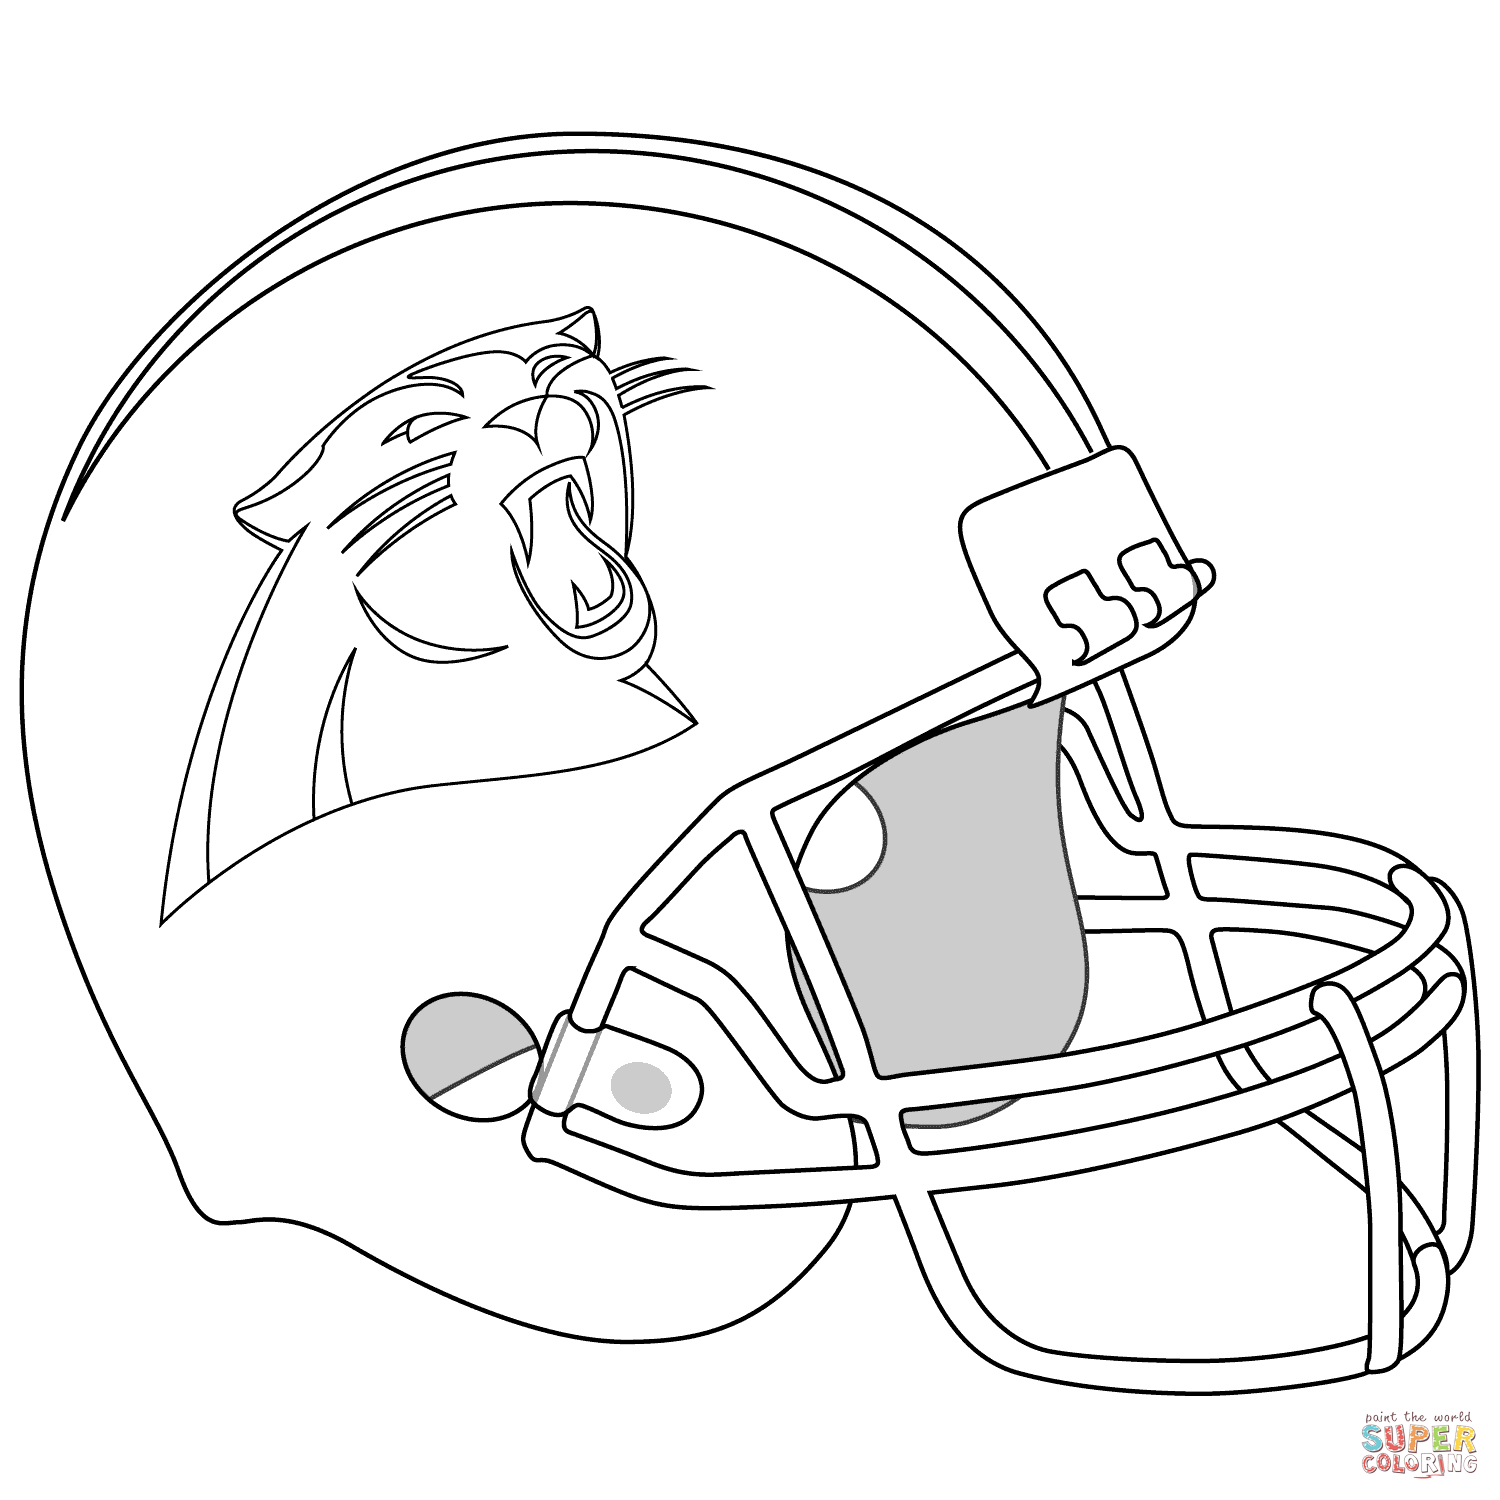 Carolina Panthers Coloring Pages Coloring Home